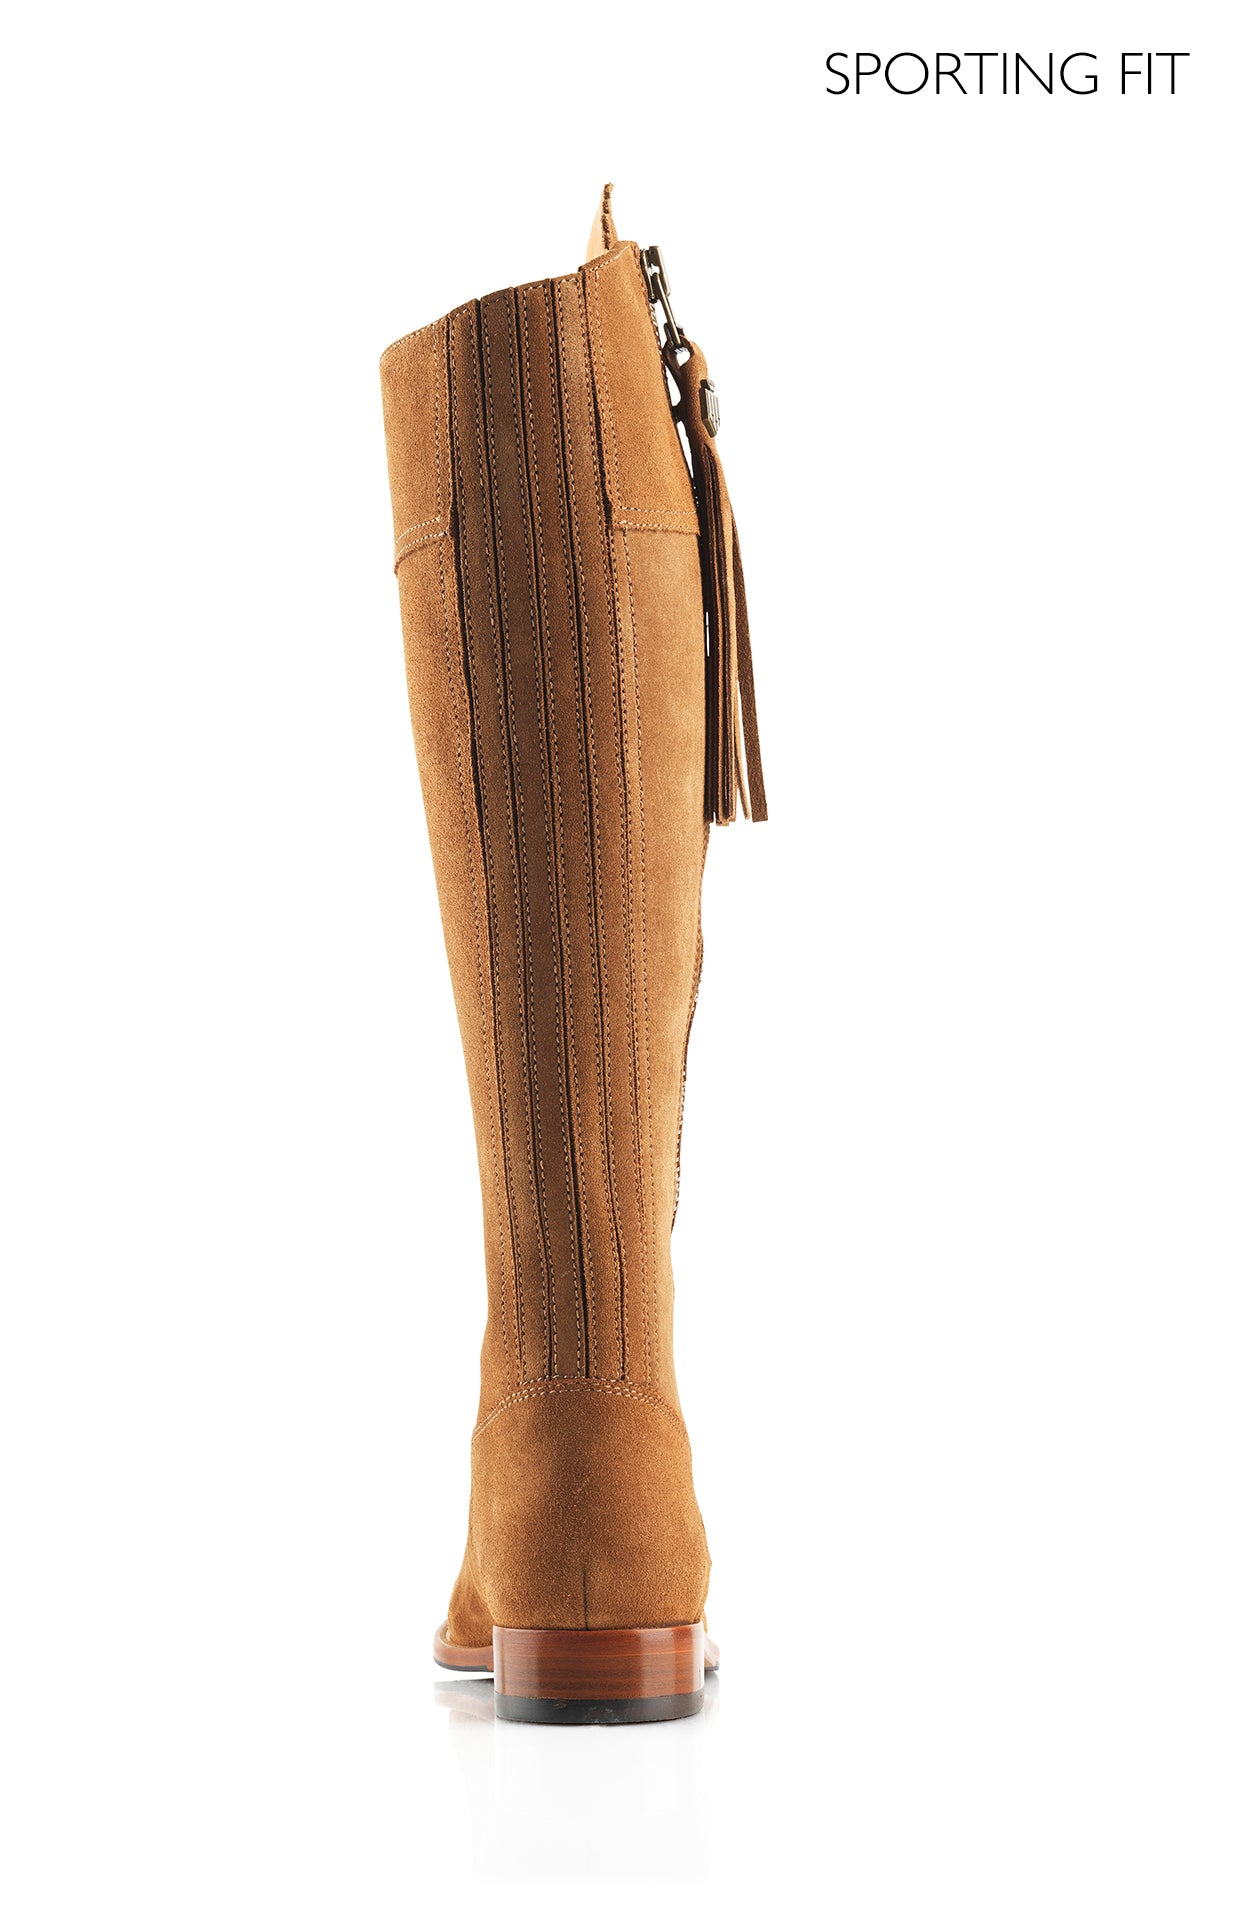 Fairfax and Favor Regina Boots Sport Fit for Ladies in Tan